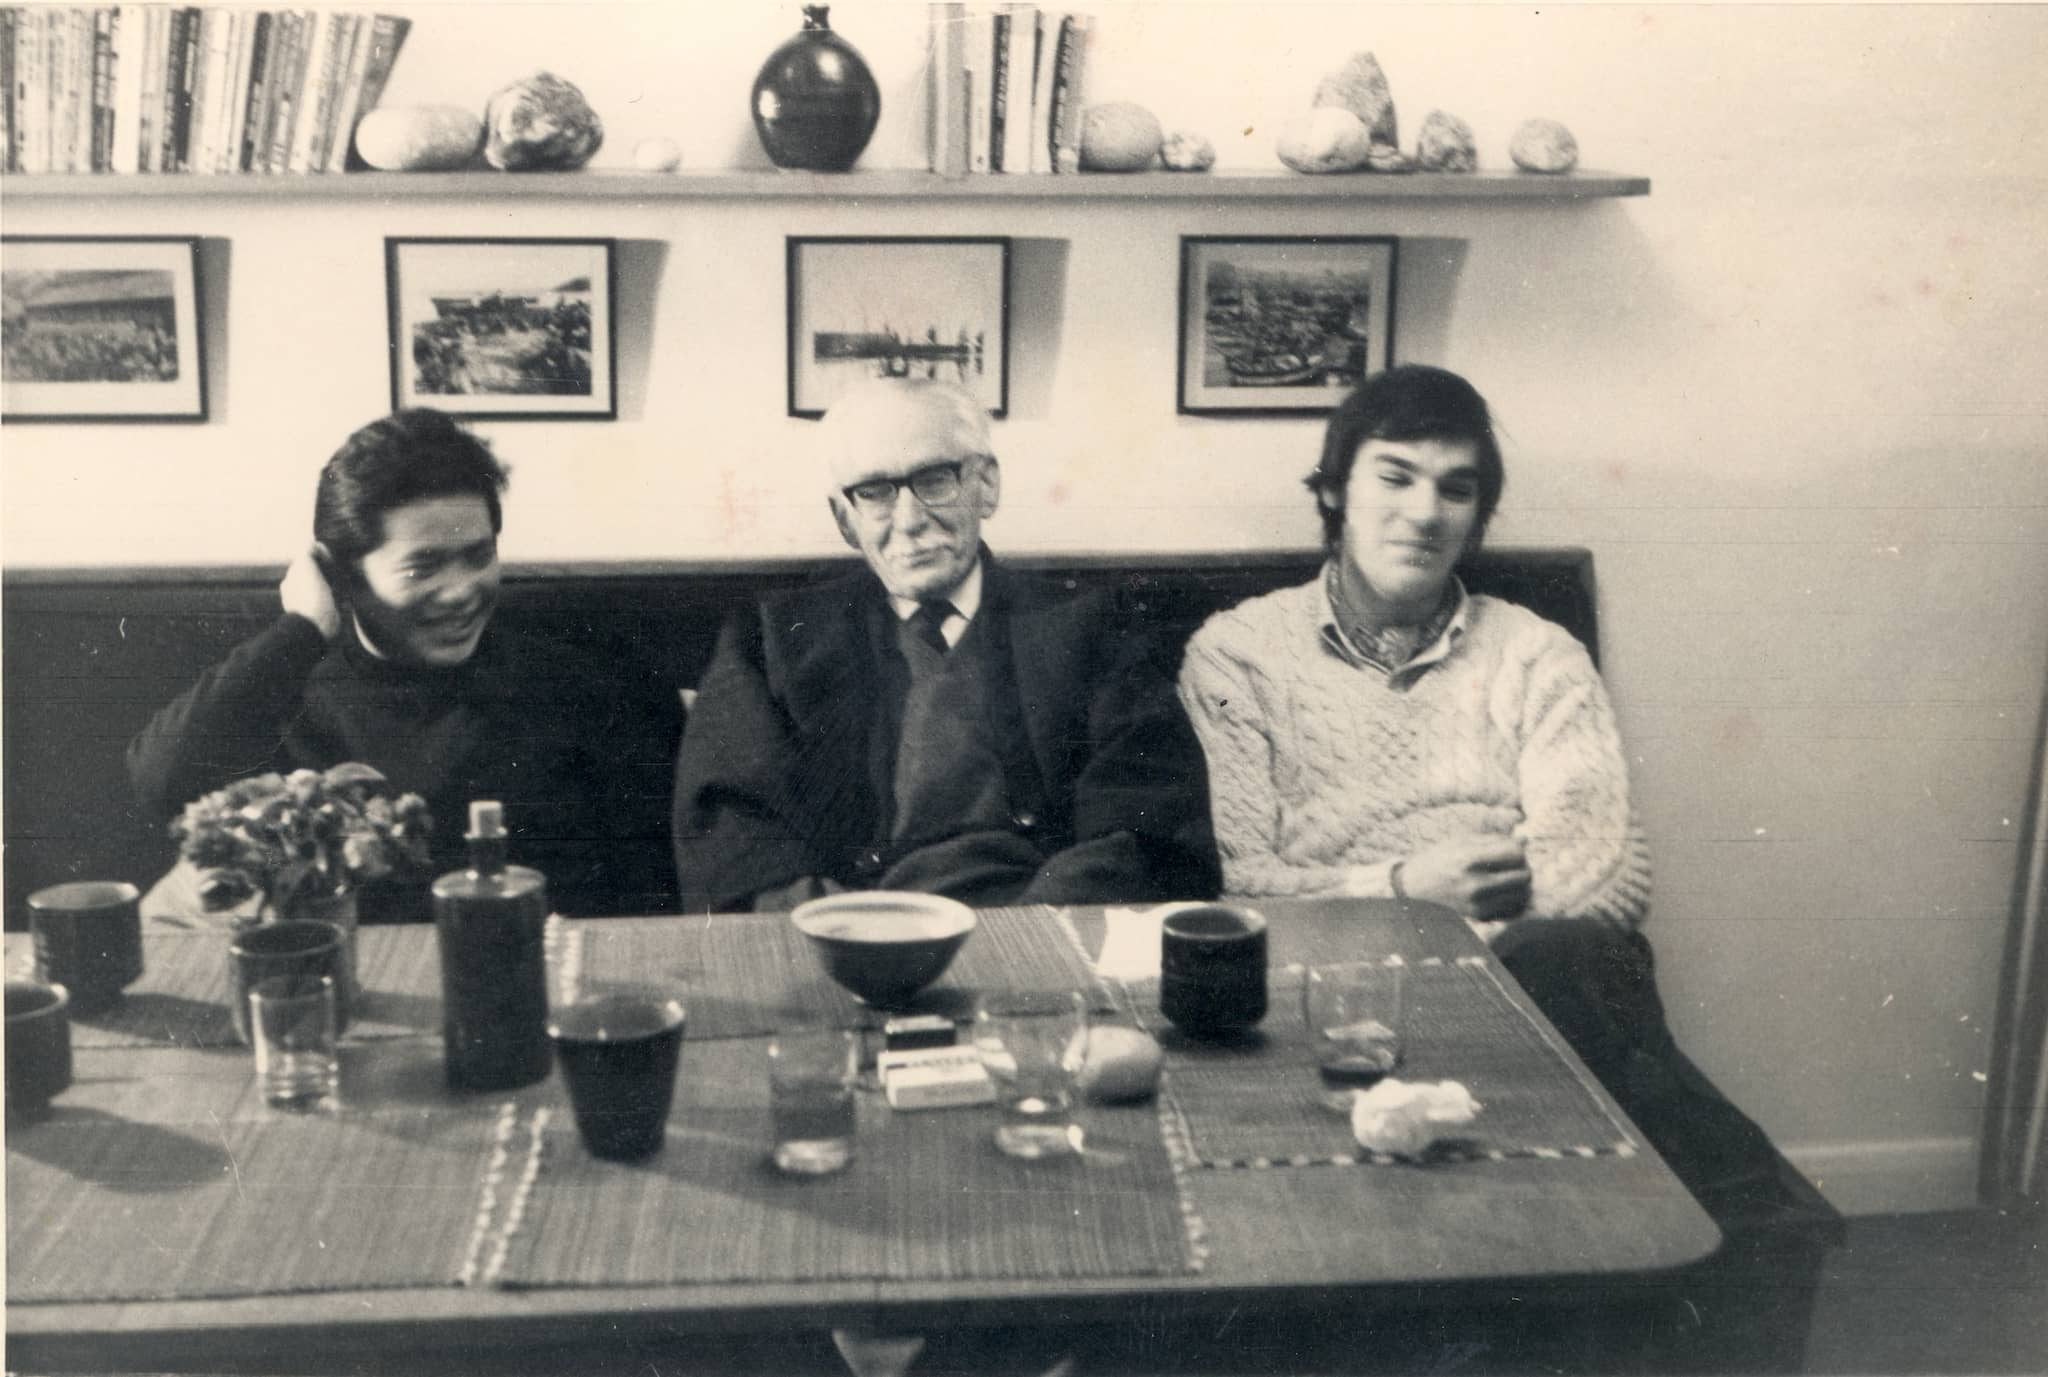 Dinner at Bernard Leach's home (l-r): Shigeyoshi Ichino, Bernard Leach, Jeff Oestreich, 1970. Courtesy of Jeff Oestreich.